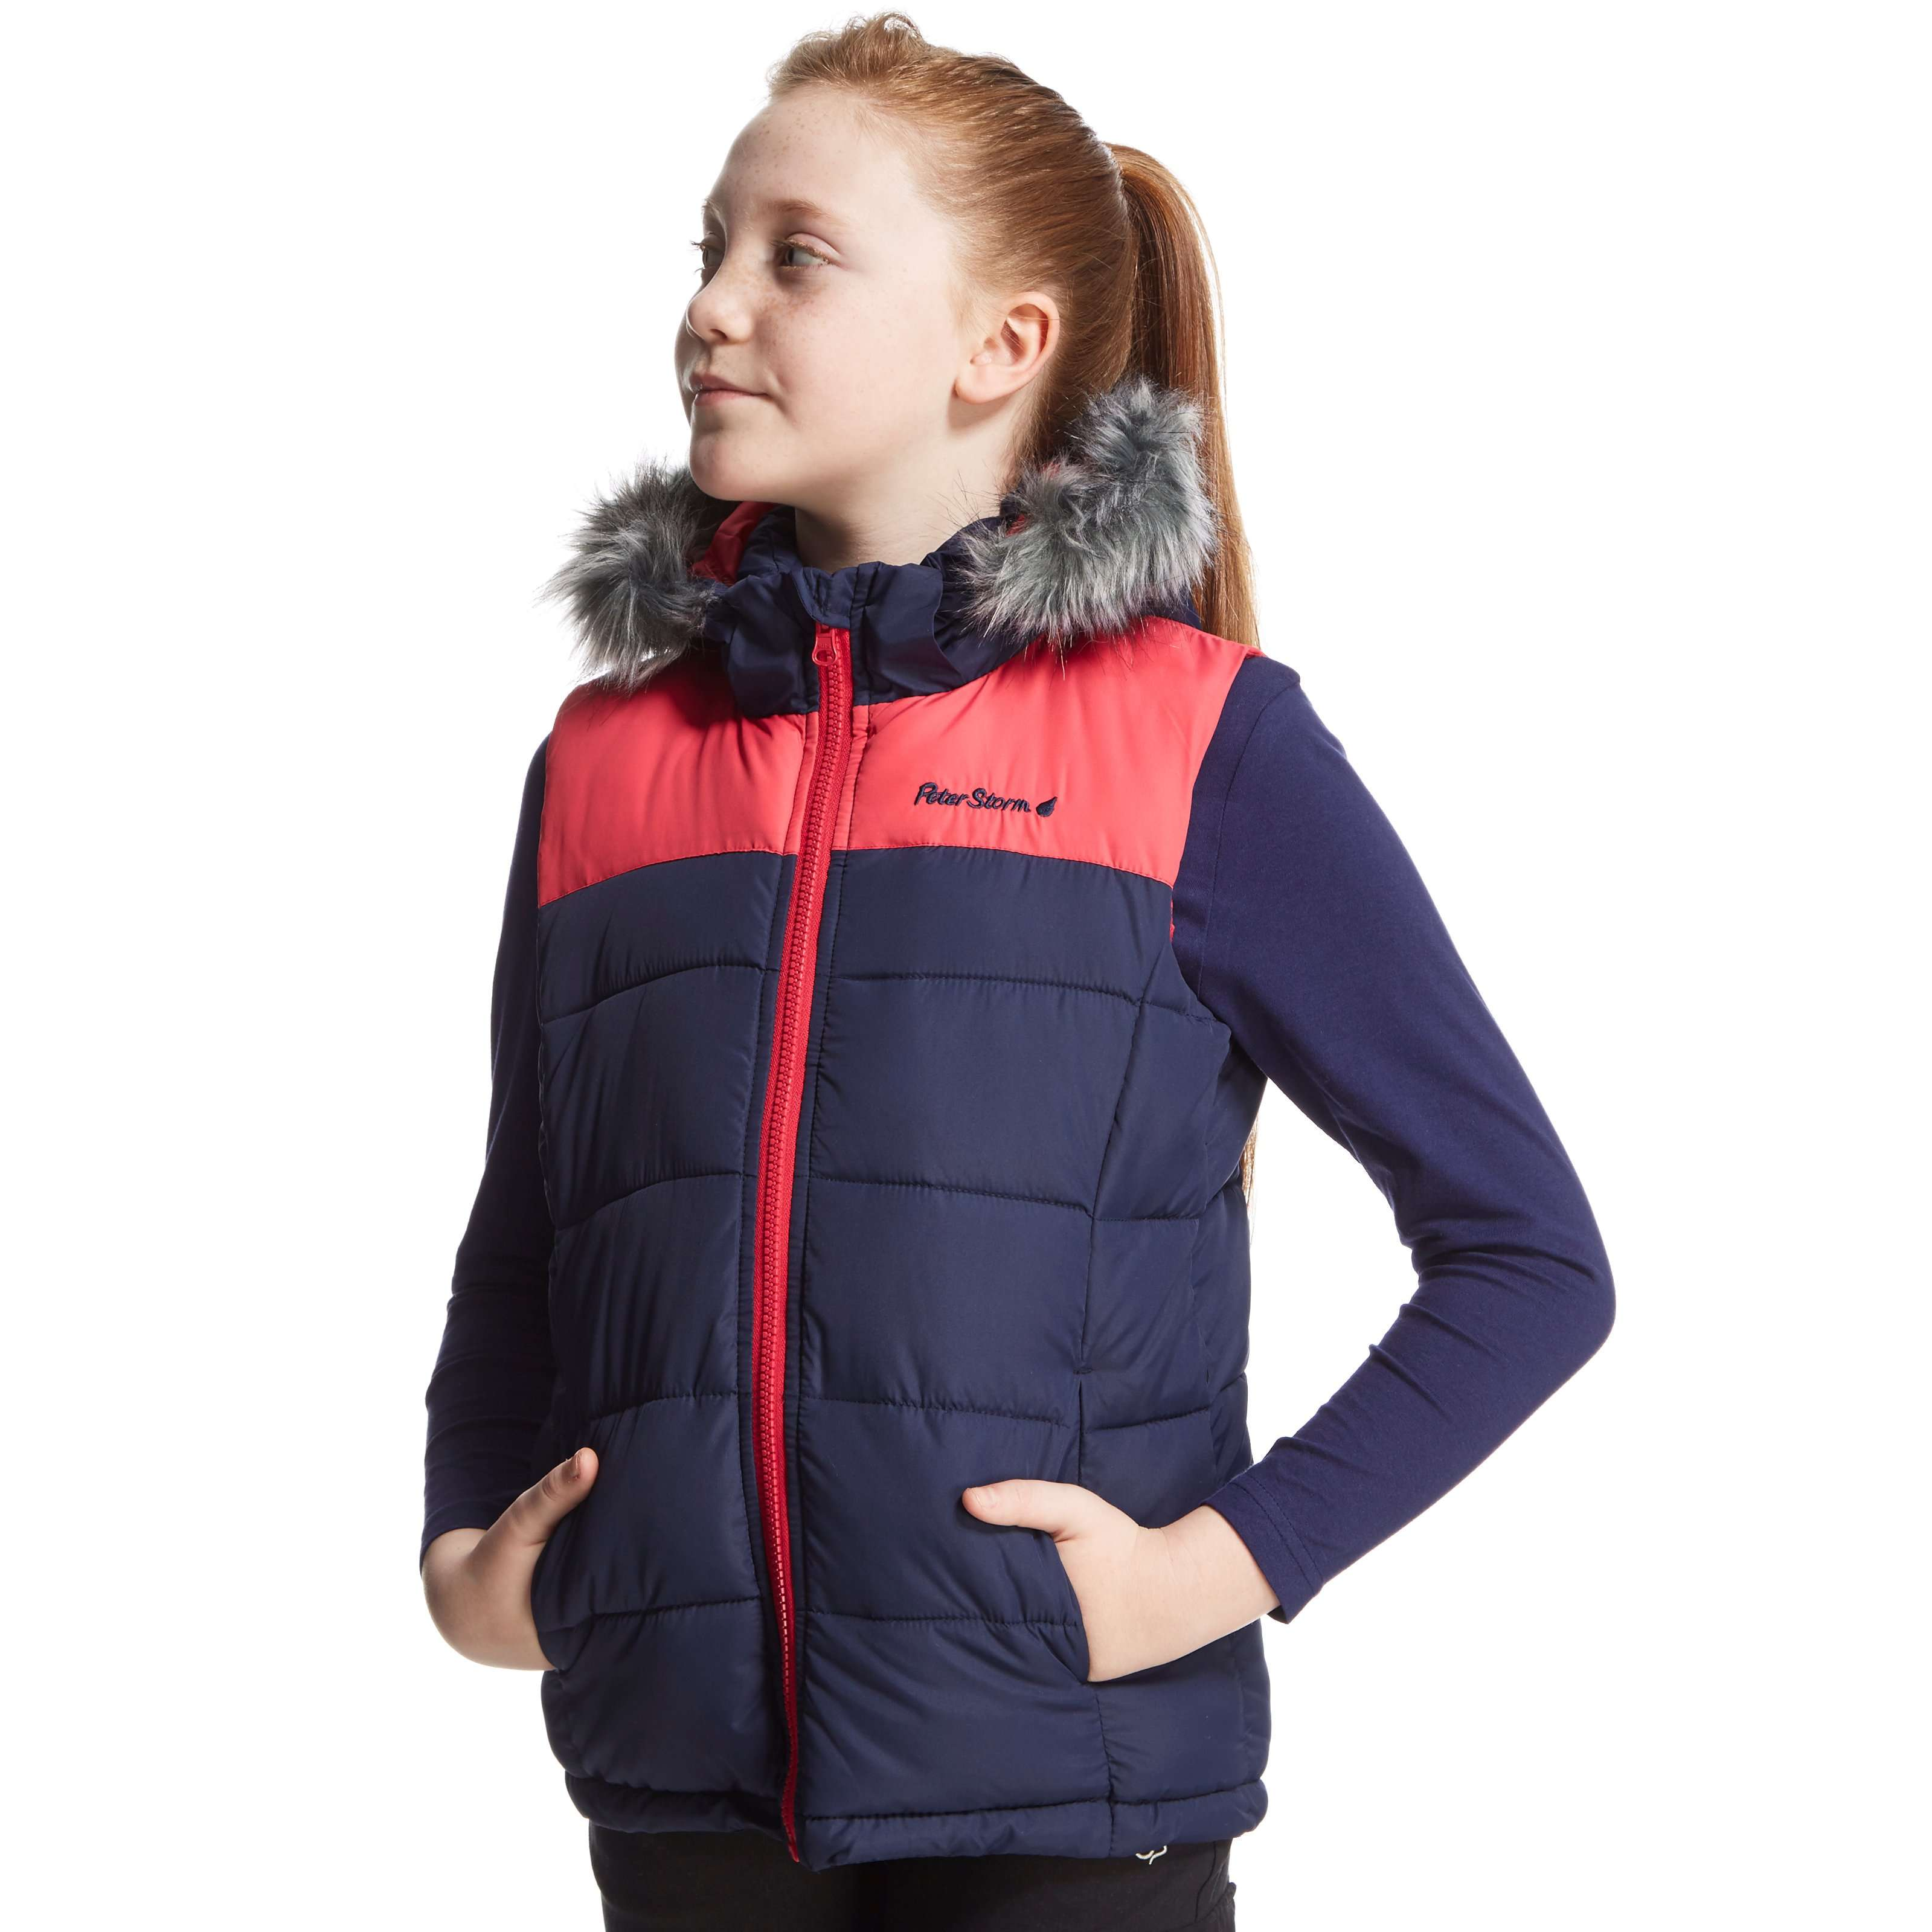 PETER STORM Girls' Willow Gilet